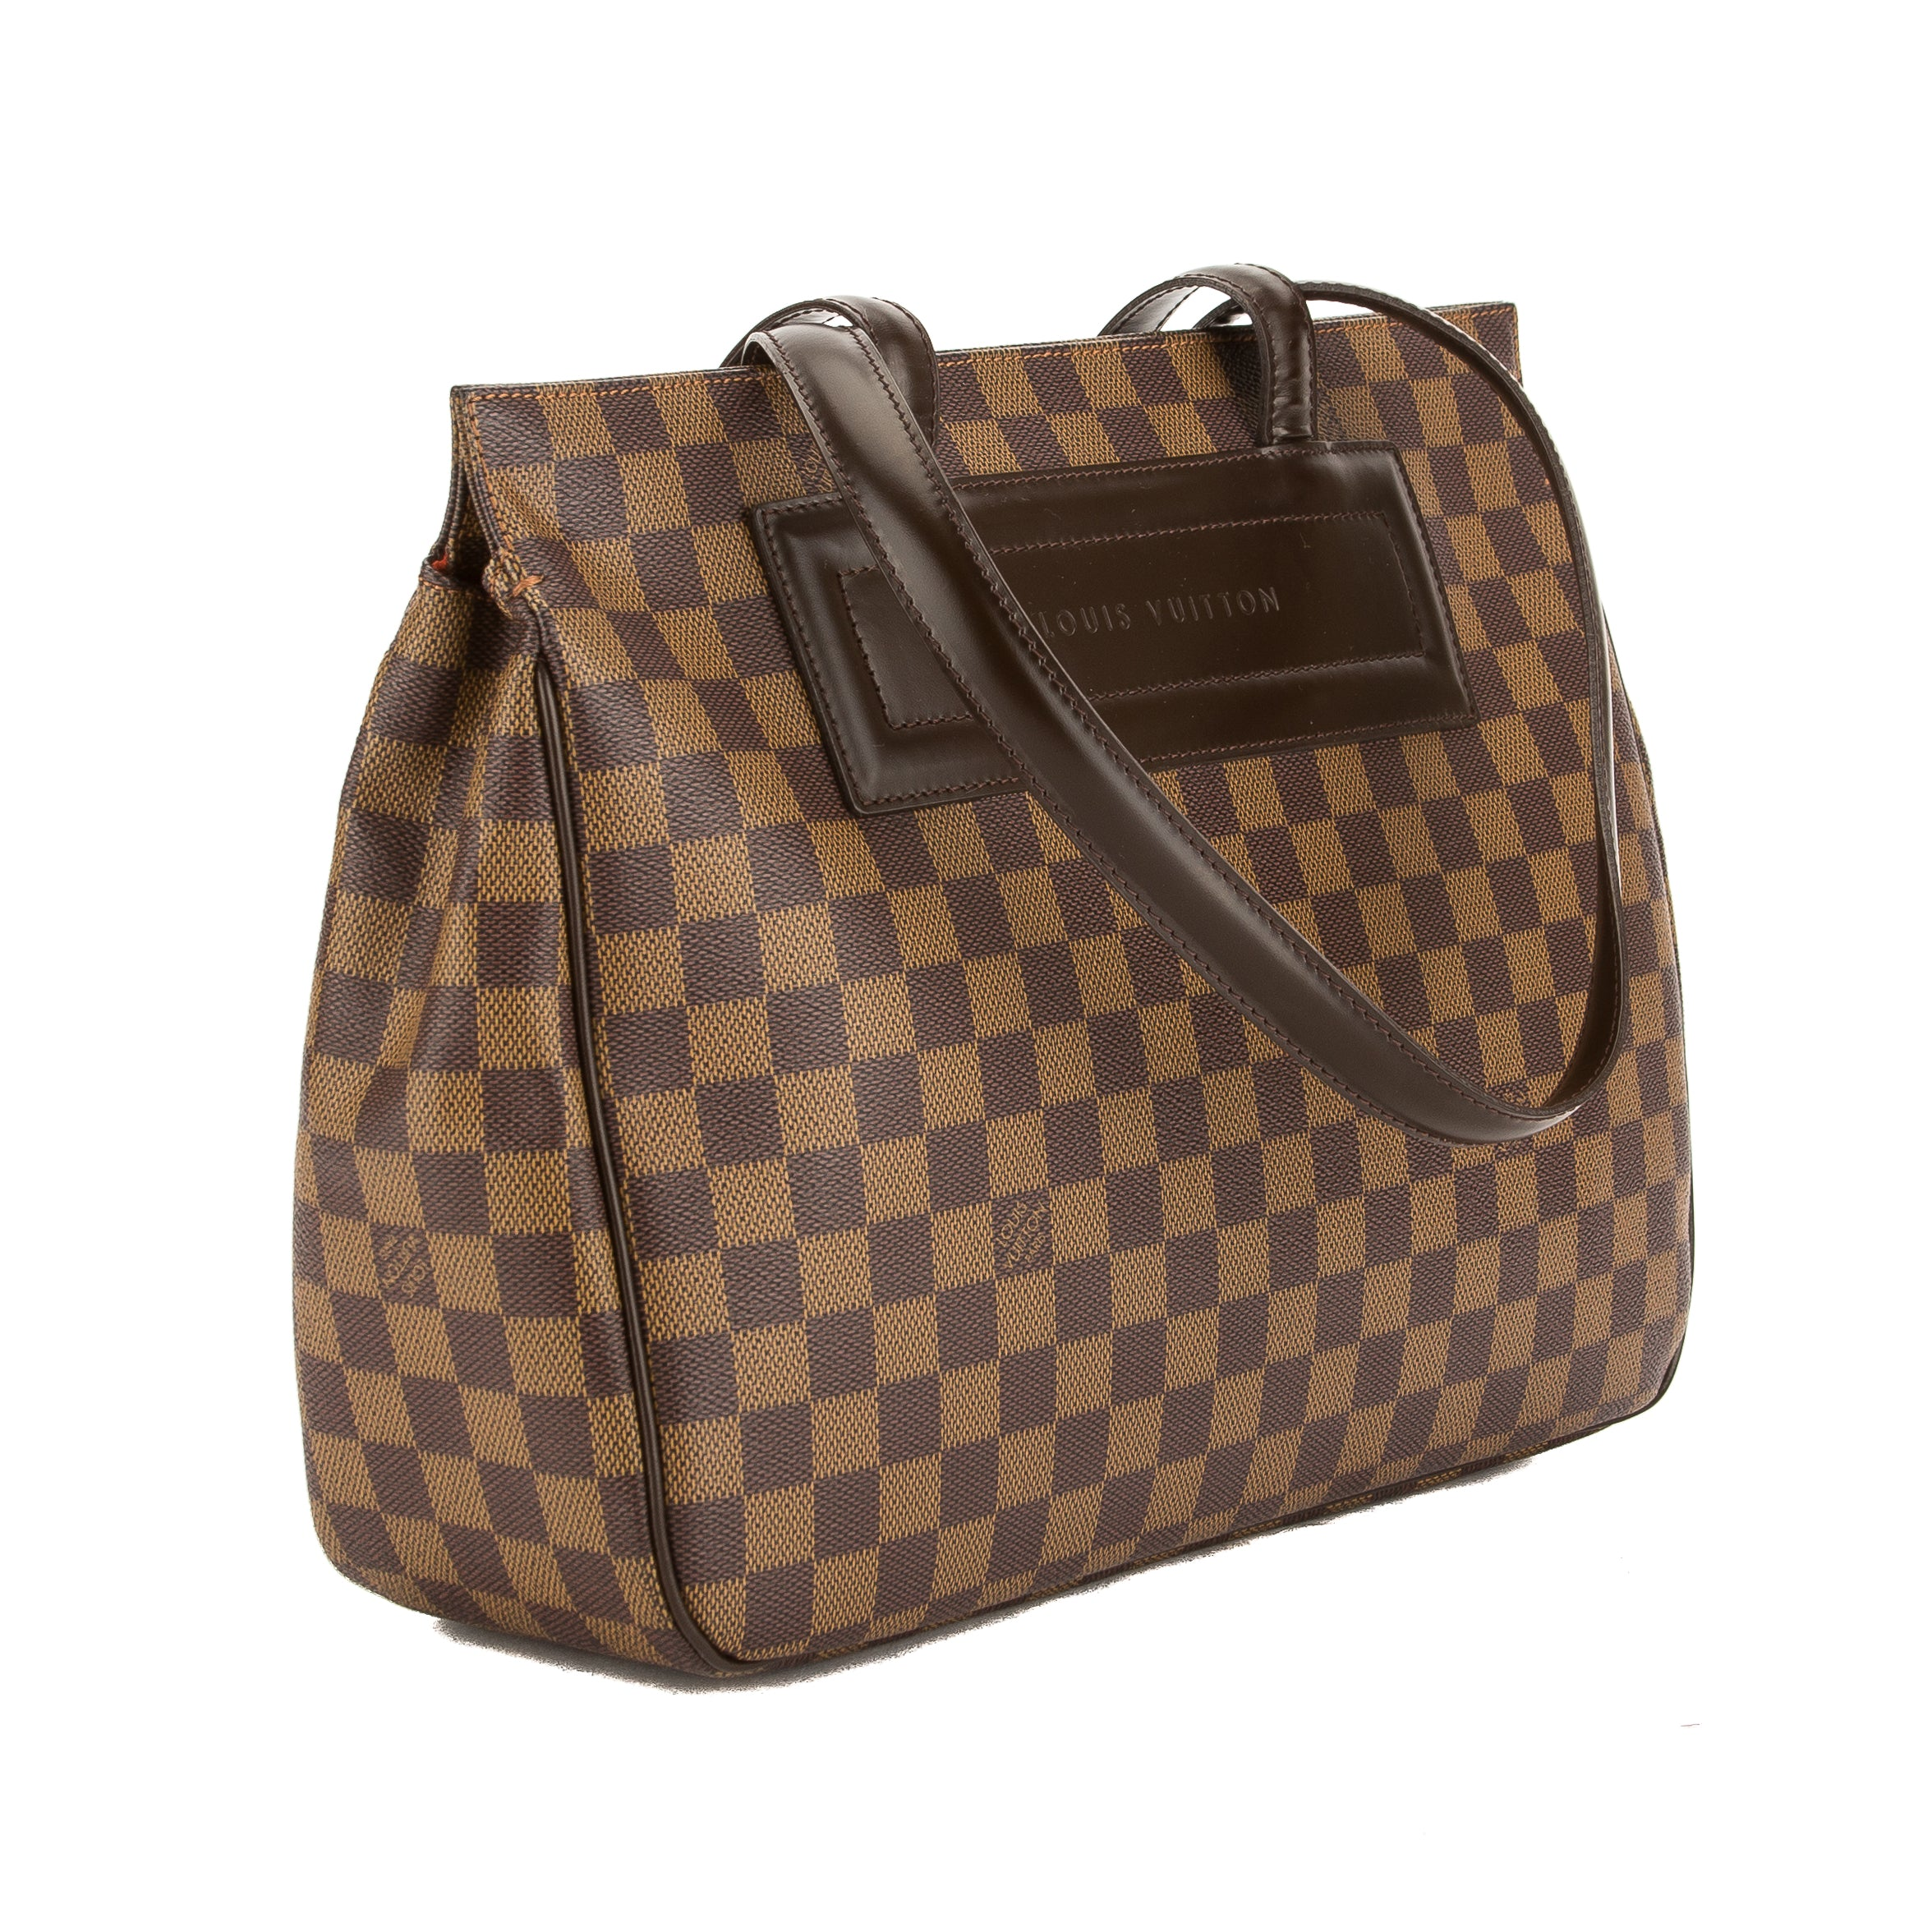 Louis Vuitton Damier Ebene Canvas Parioli PM Bag (Pre Owned) - 3668008  82847a2821f6c